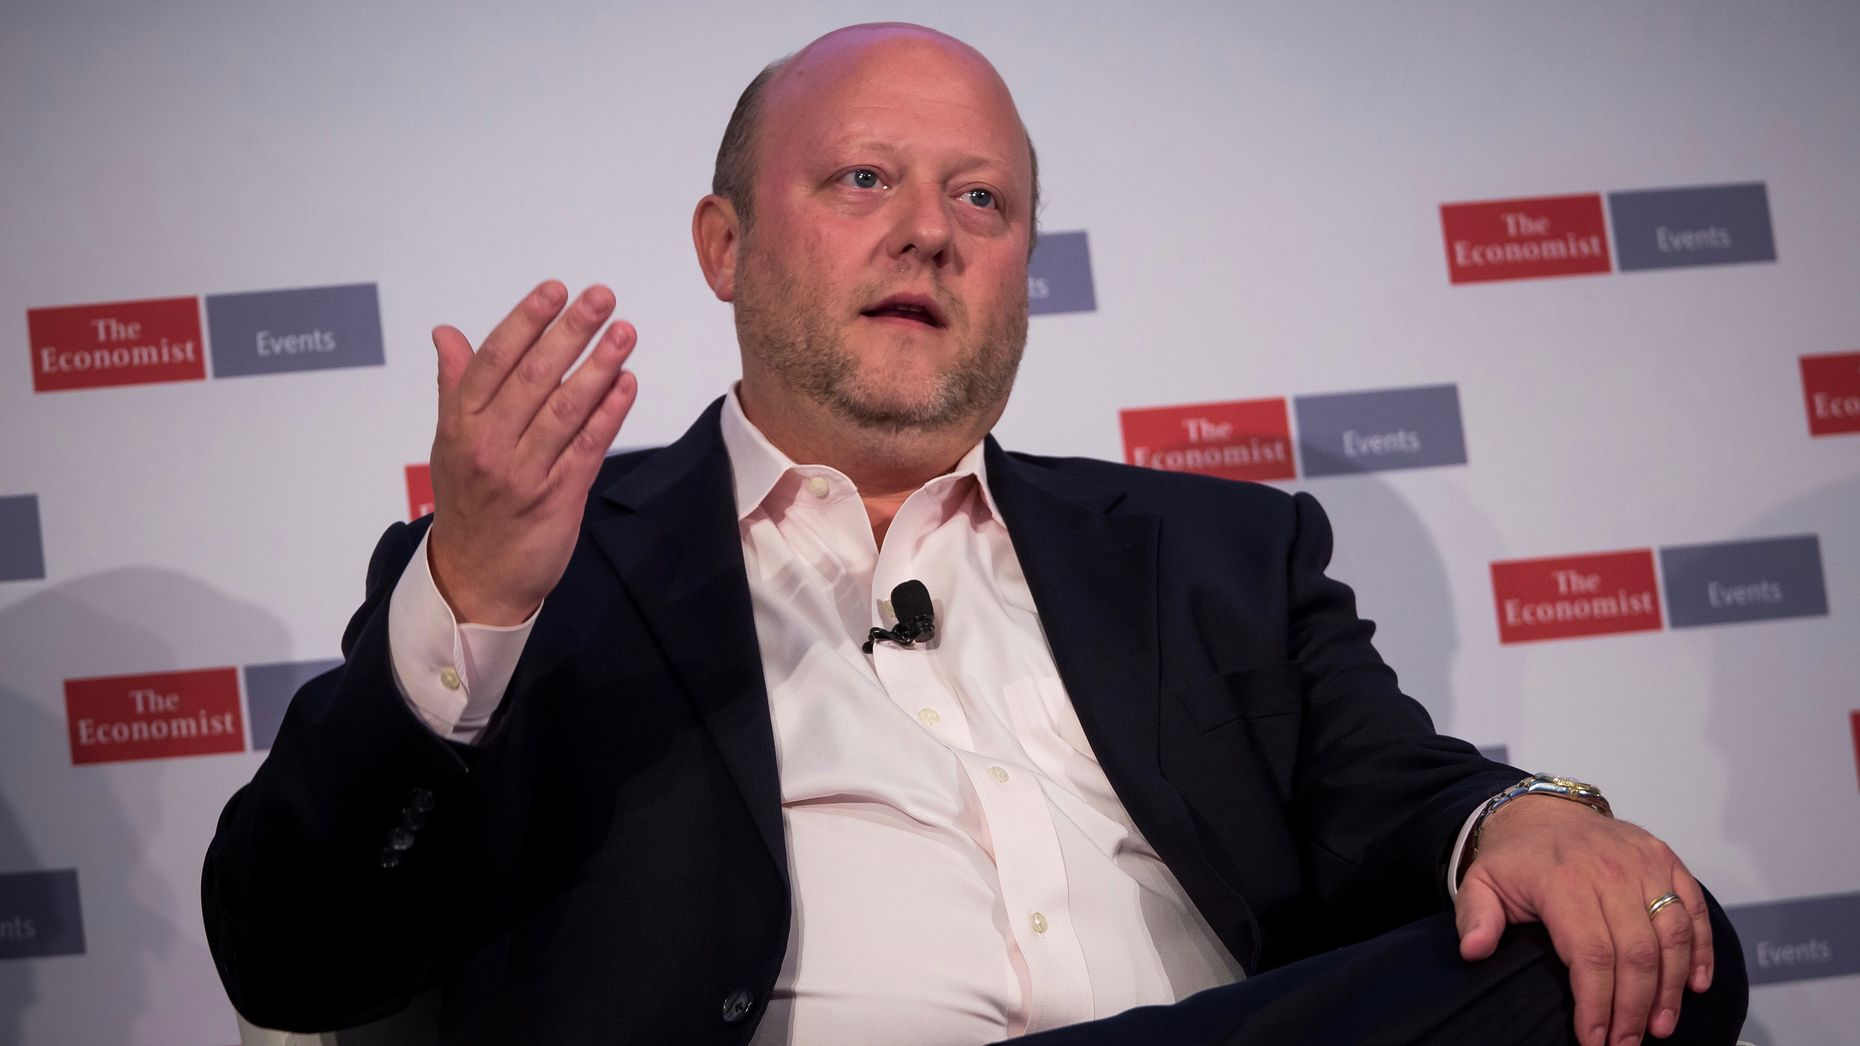 Circle CEO Jeremy Allaire. Photo by Bloomberg